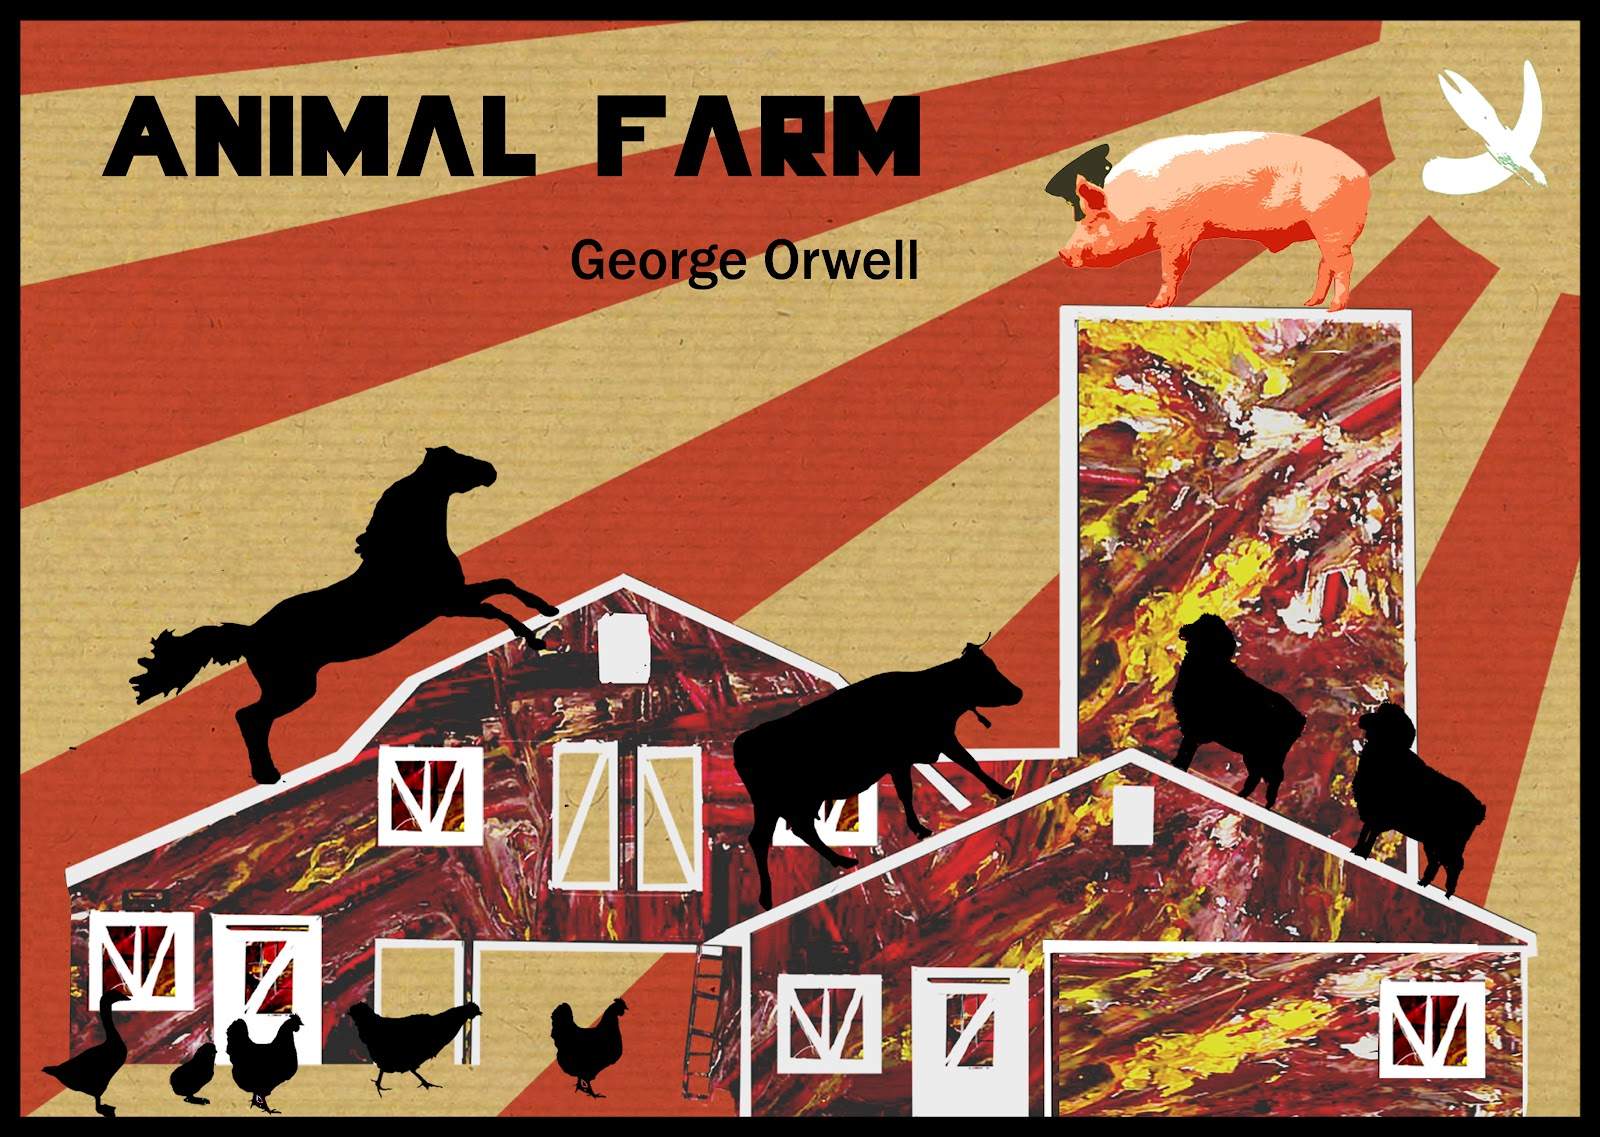 george orwell animal farm essay battle of the cowshed animal farm  animal farm propaganda essay help best custom written essays animal farm propaganda essay help best custom a world out george orwell